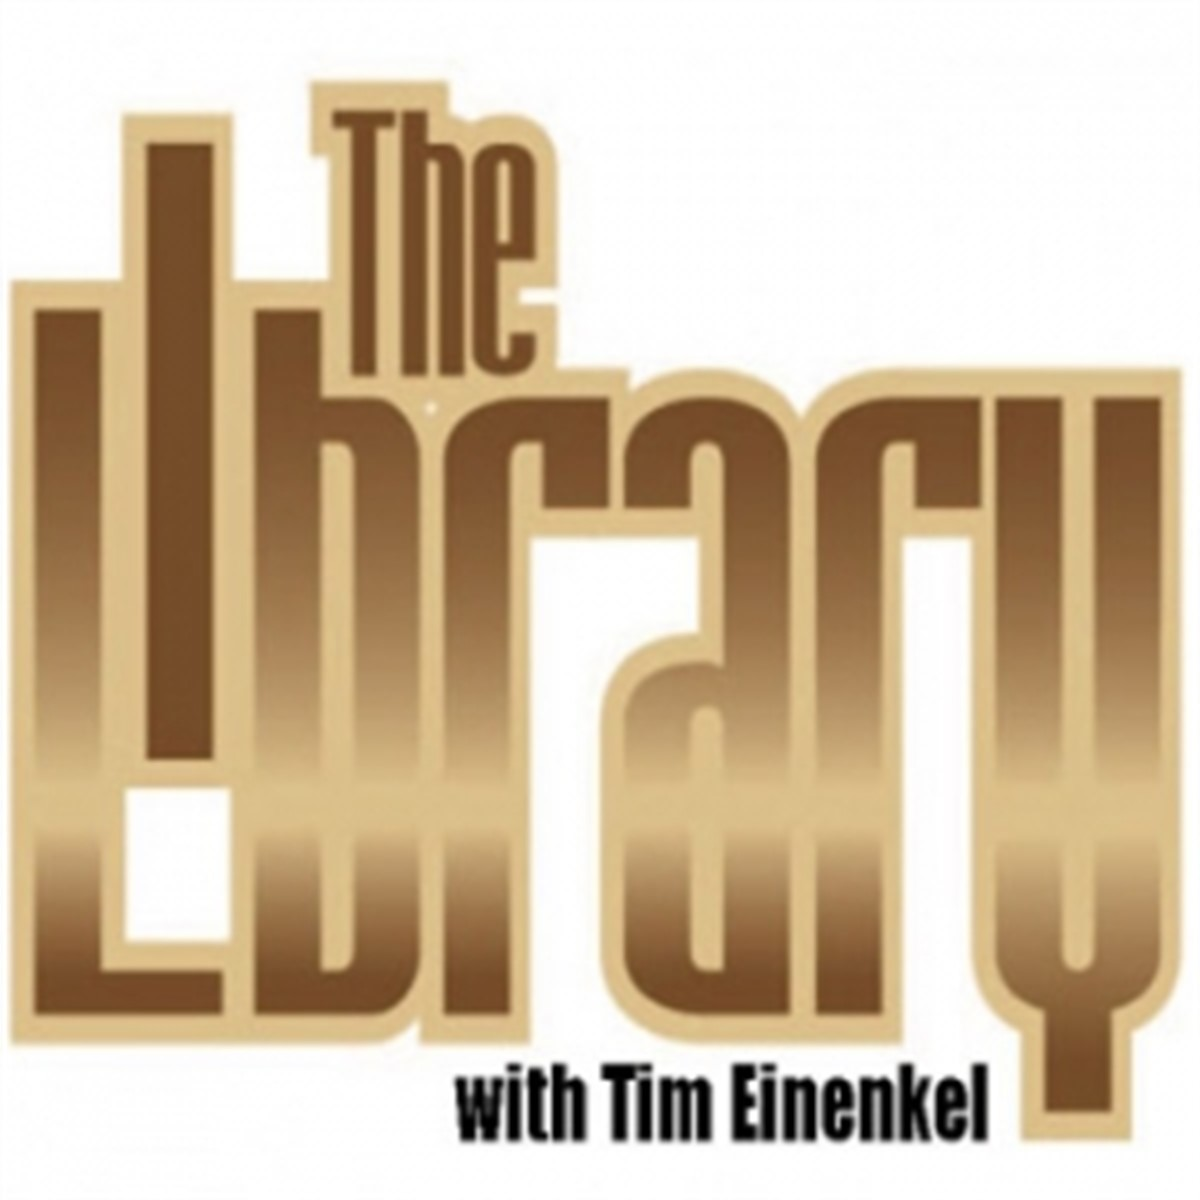 The Library with Tim Einenkel